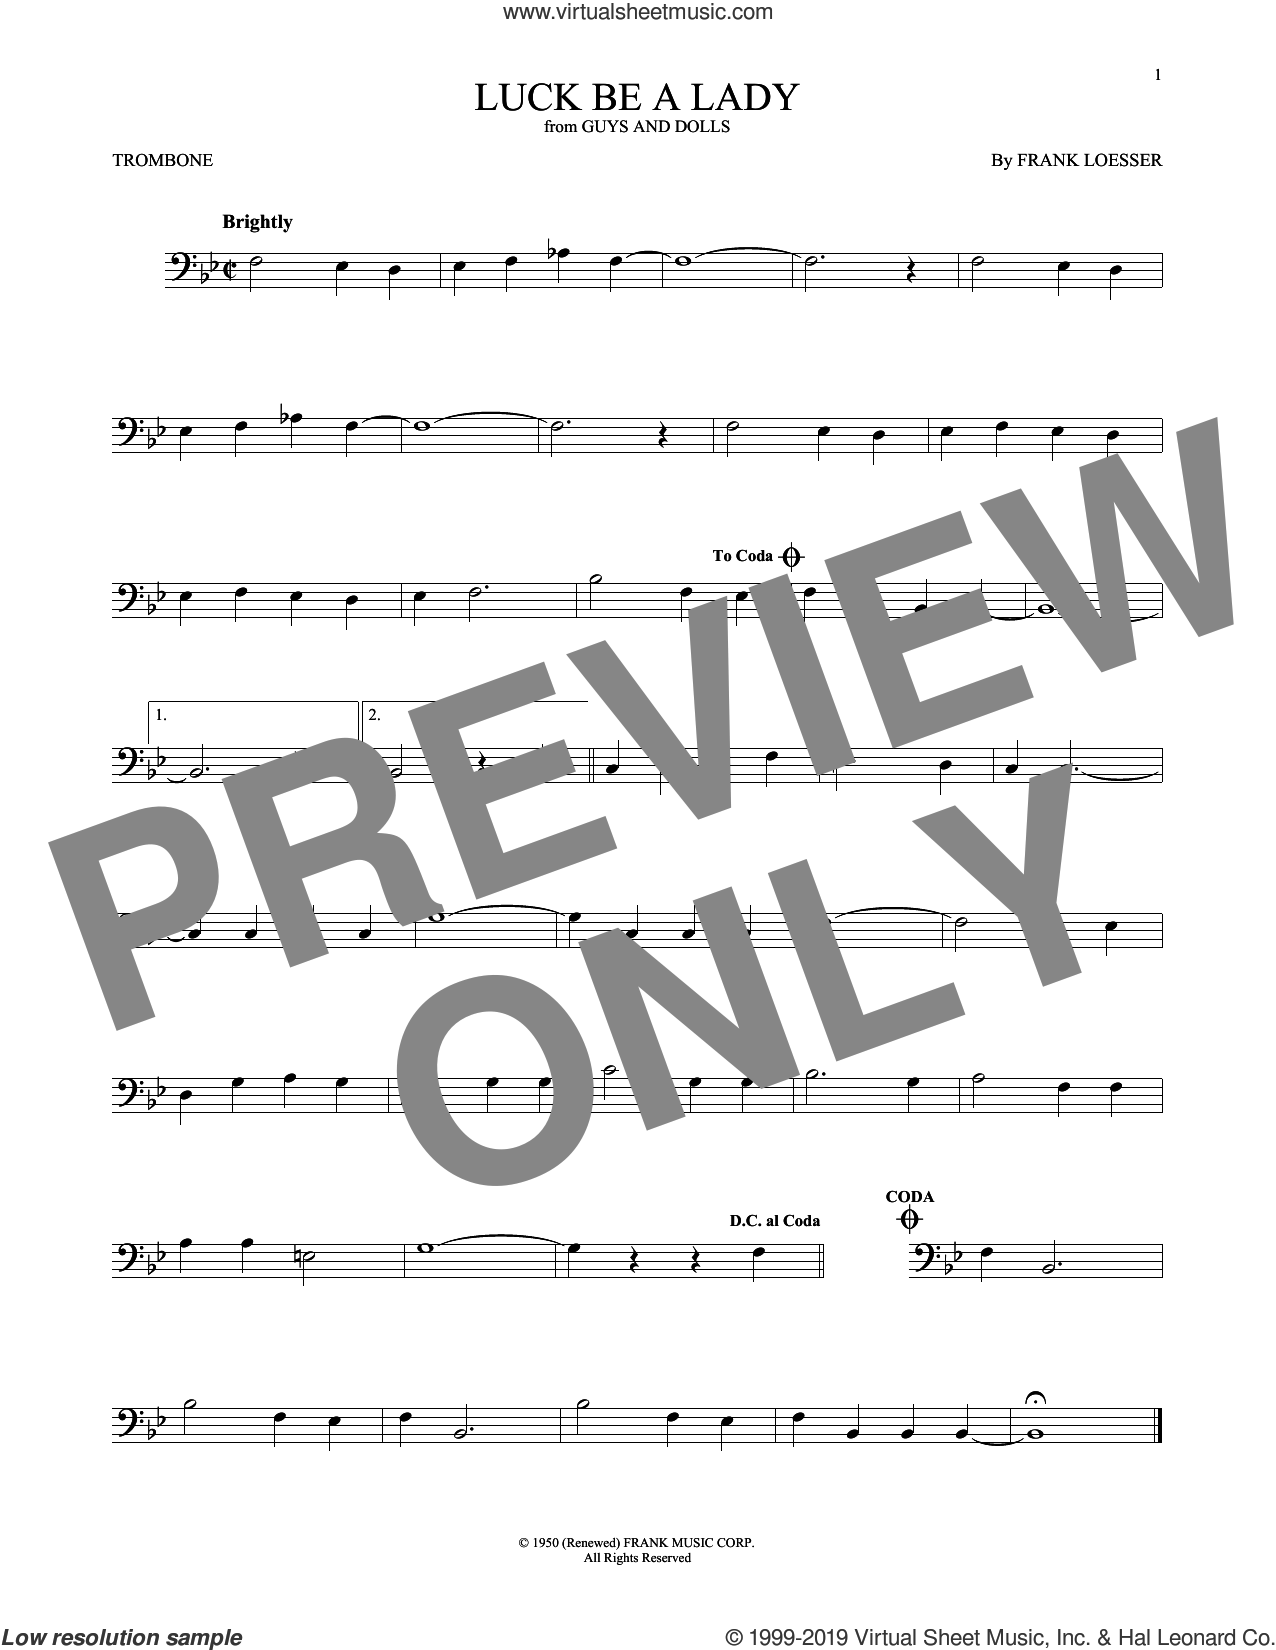 Luck Be A Lady sheet music for trombone solo by Frank Loesser, intermediate skill level